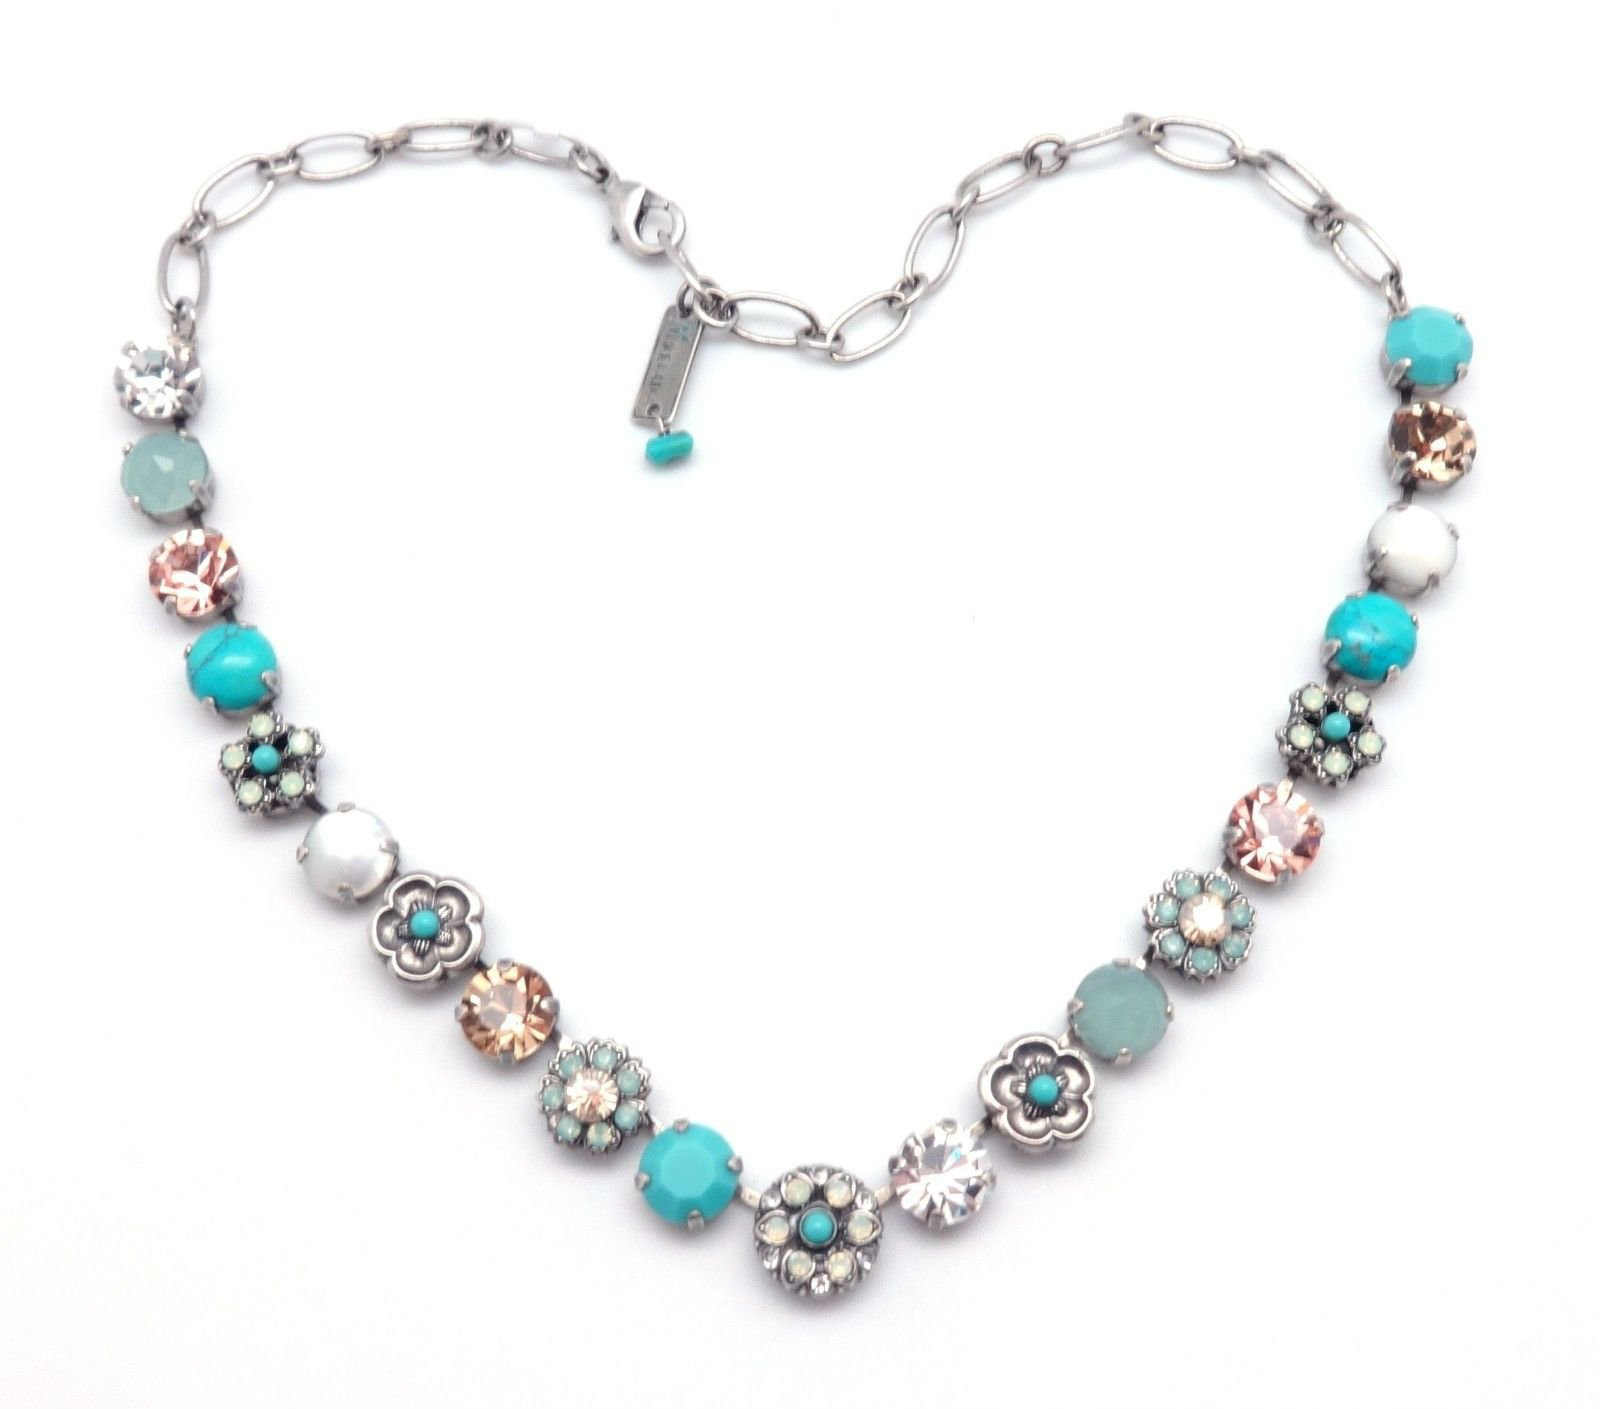 MARIANA M1042 Summer Palace Aqua with Simulated Mother of Pearl & Clear Swarovski Silver Plated Necklace